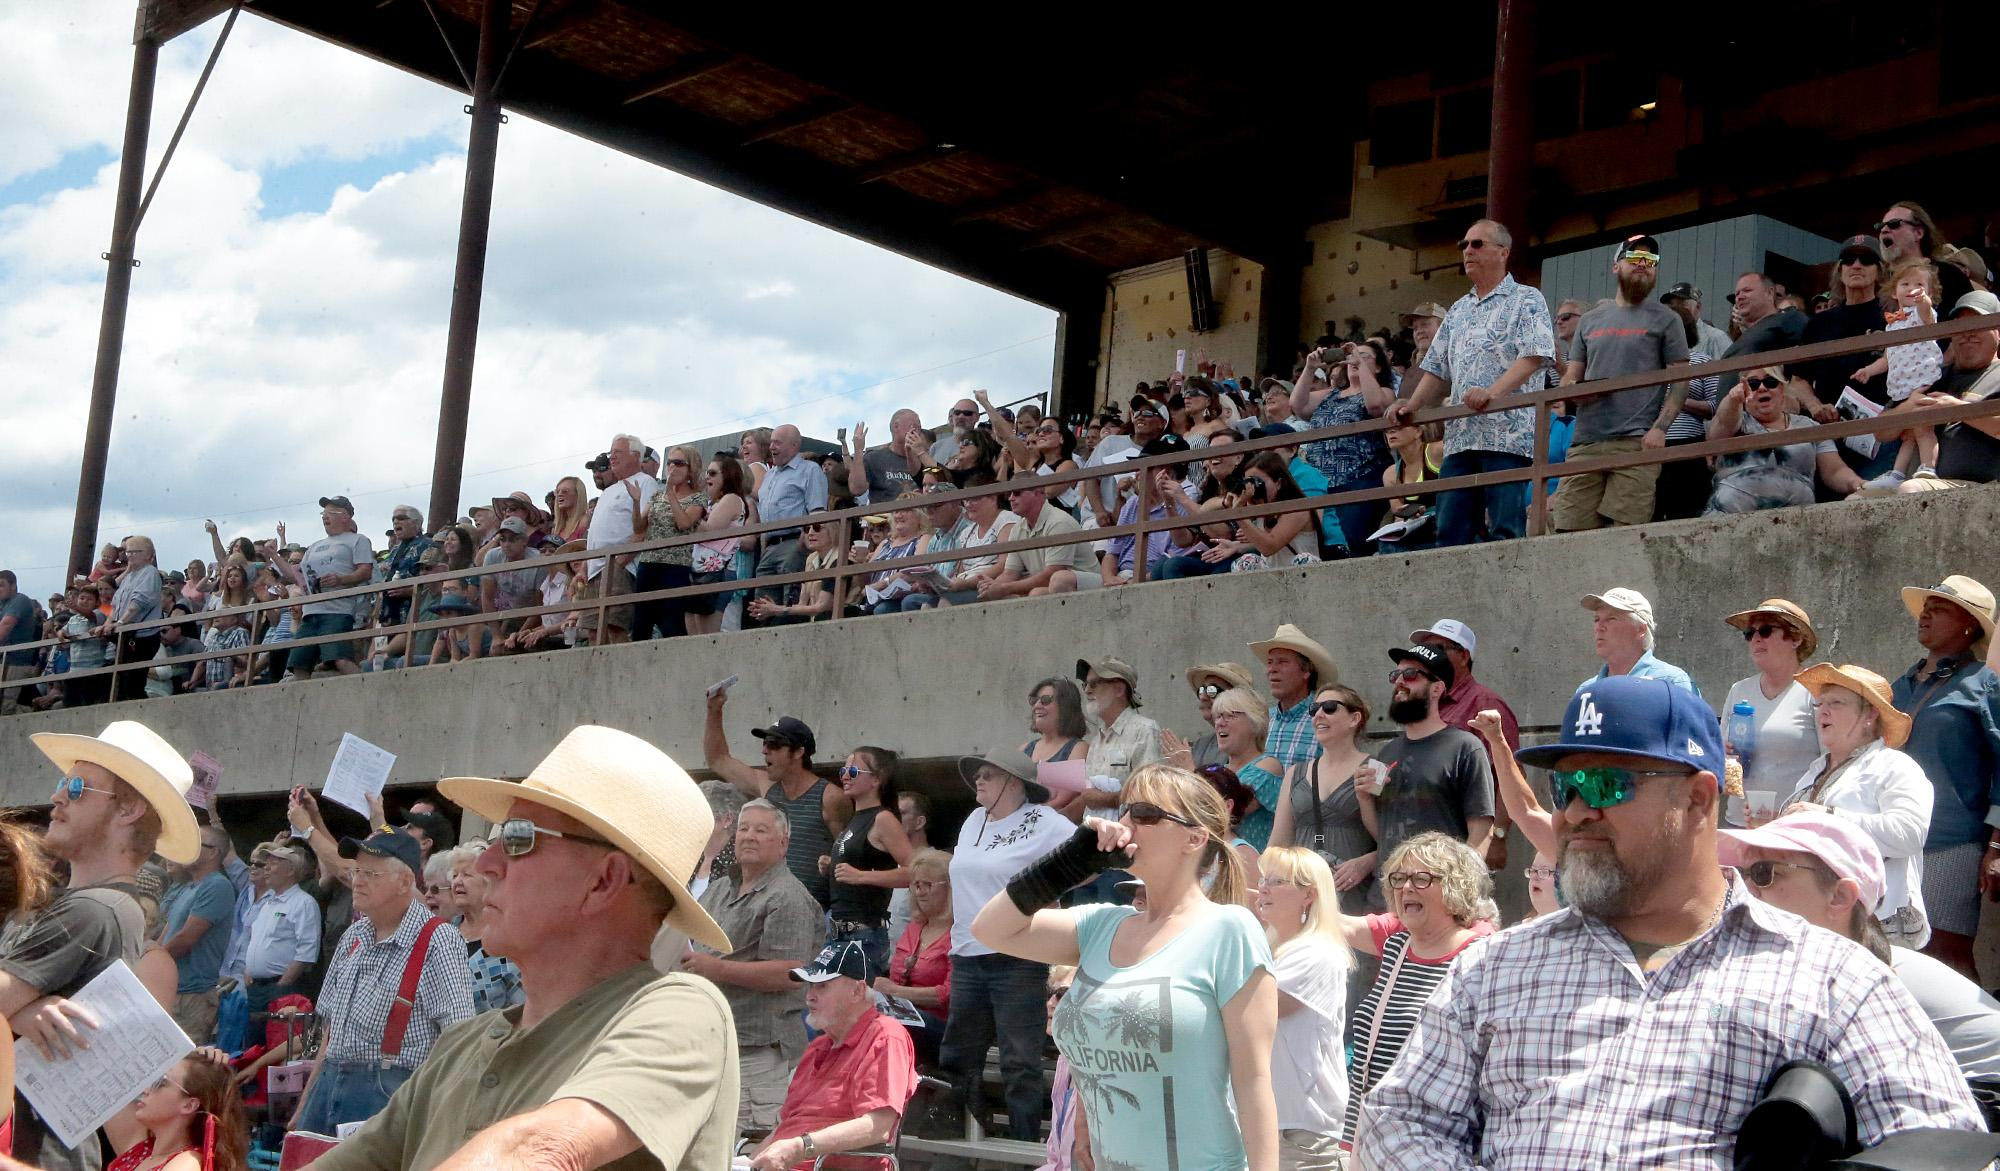 Spectators watching the Second Race at Grants Pass Downs on Sunday. [PHOTO BY:  LARRY STAUTH JR]